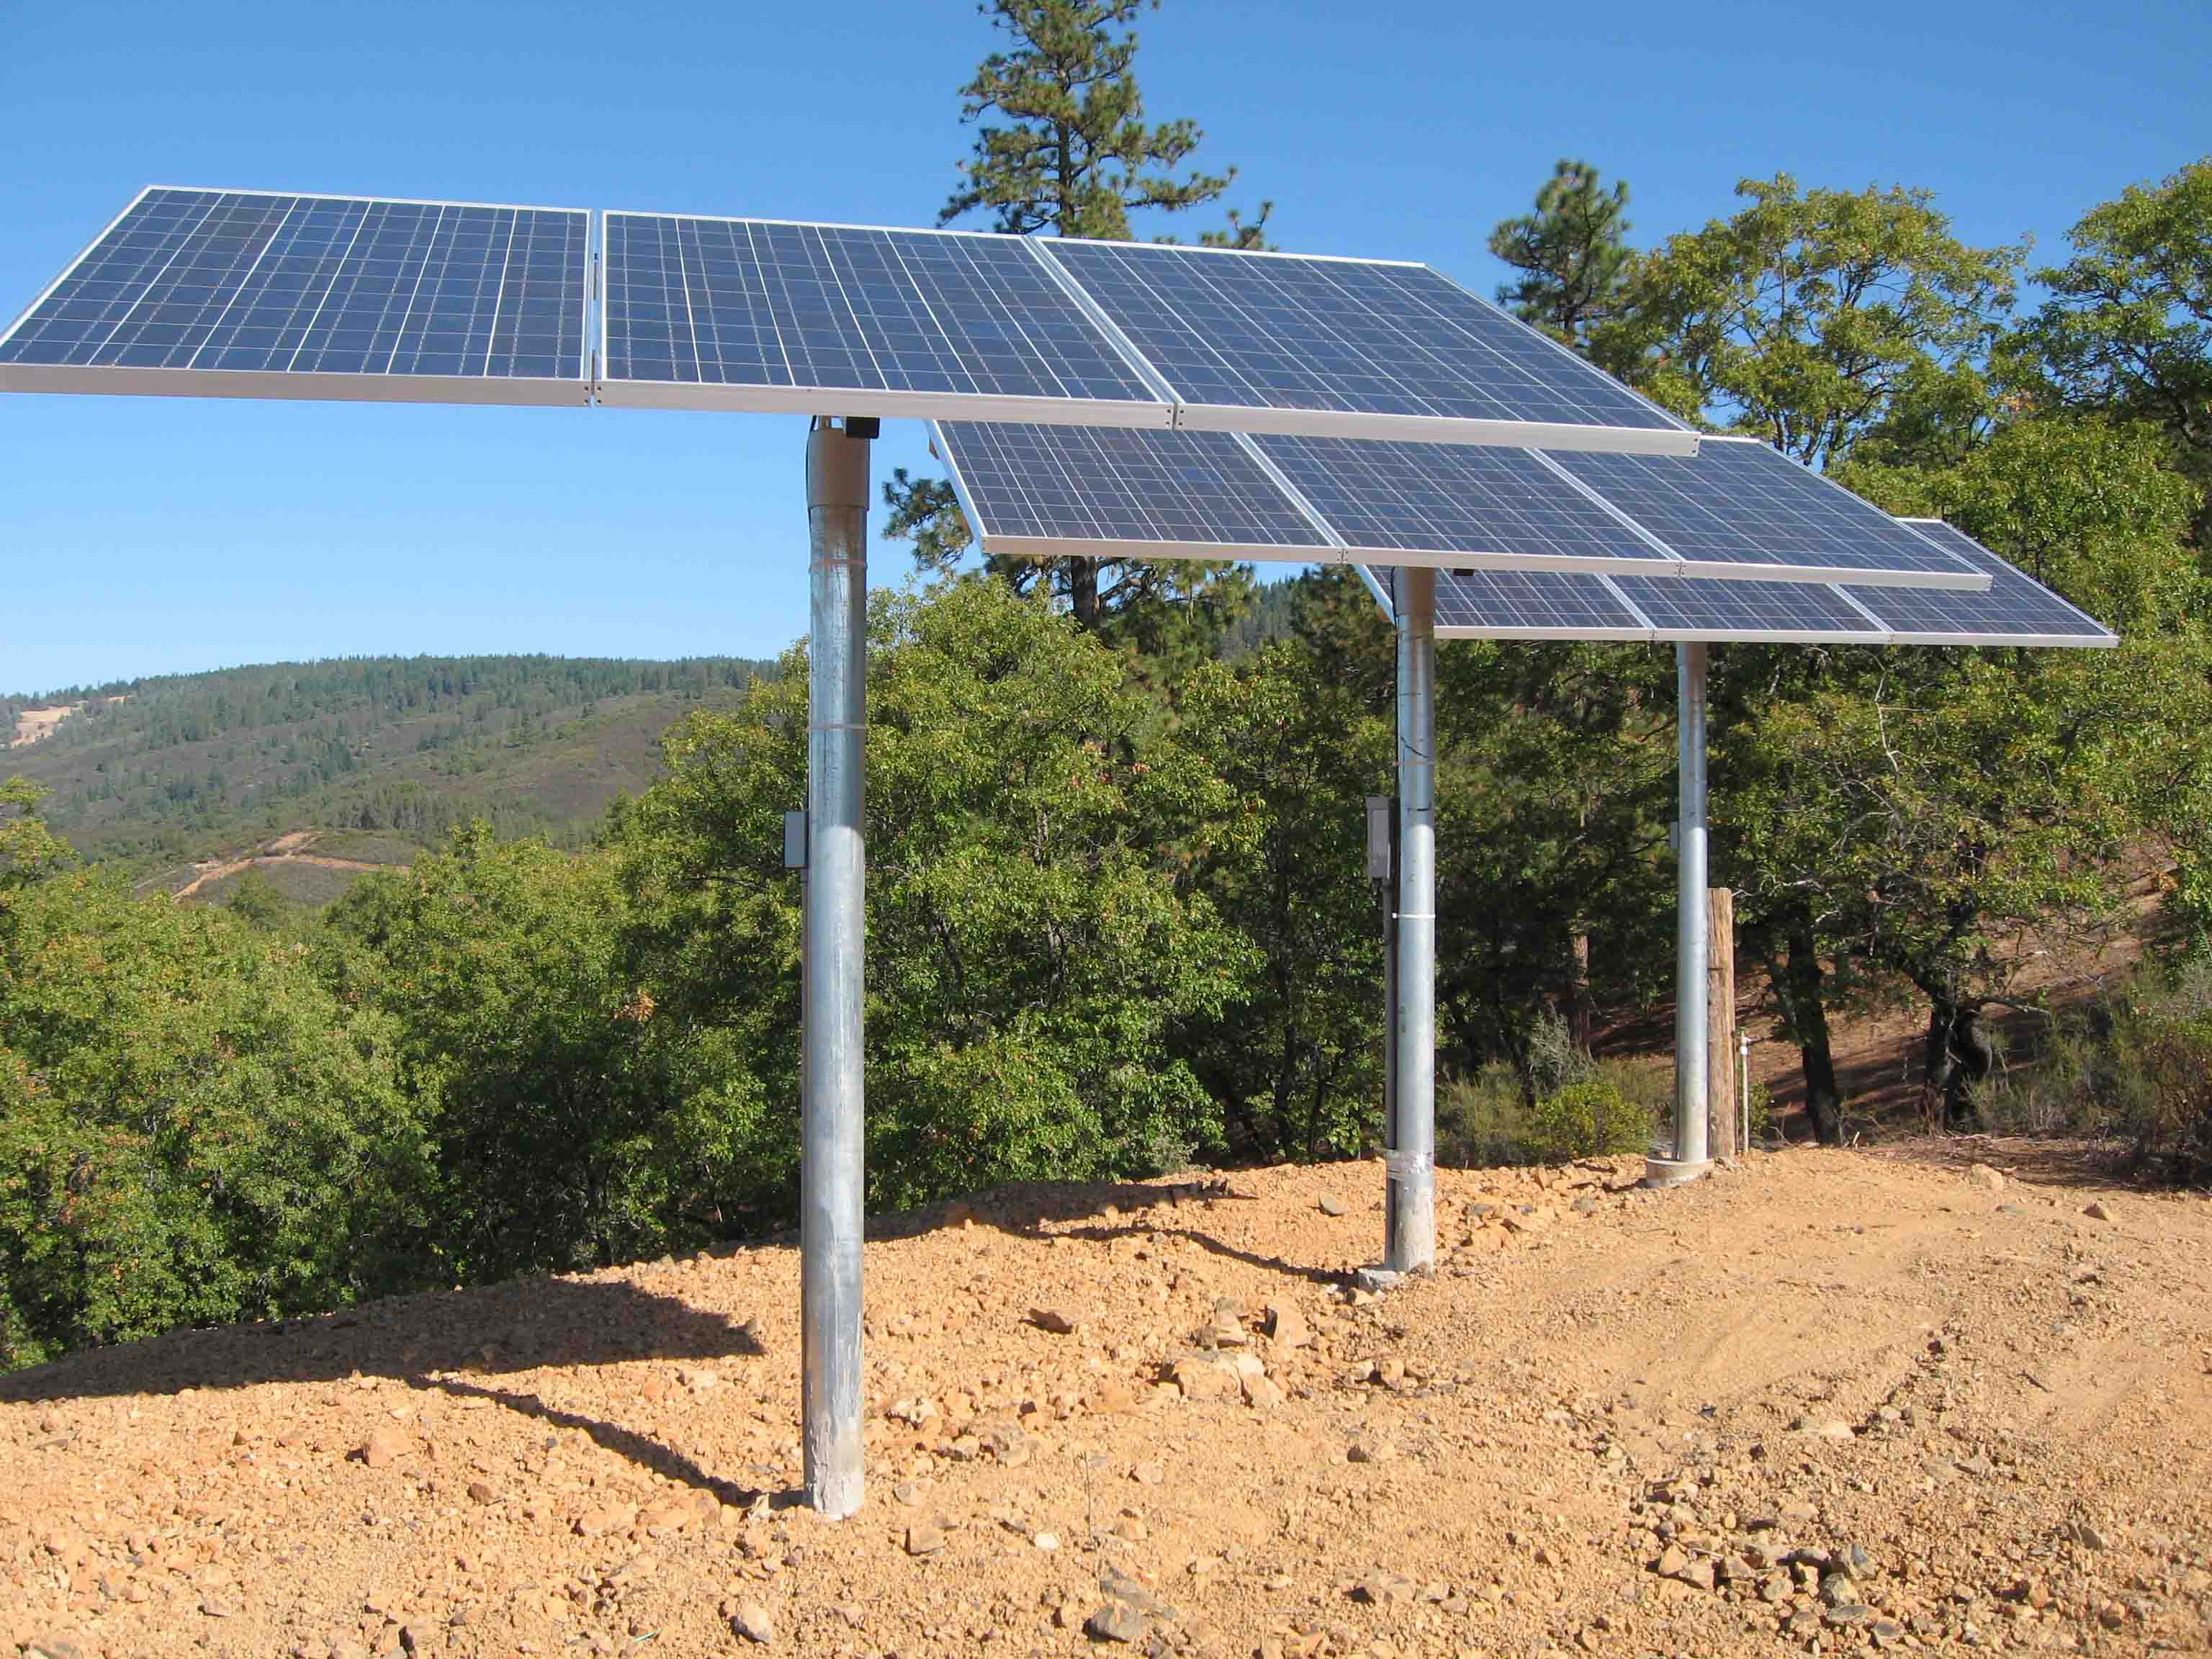 Diy Solar Panel Mount Koller Get Diy Solar Panel Pole Mount